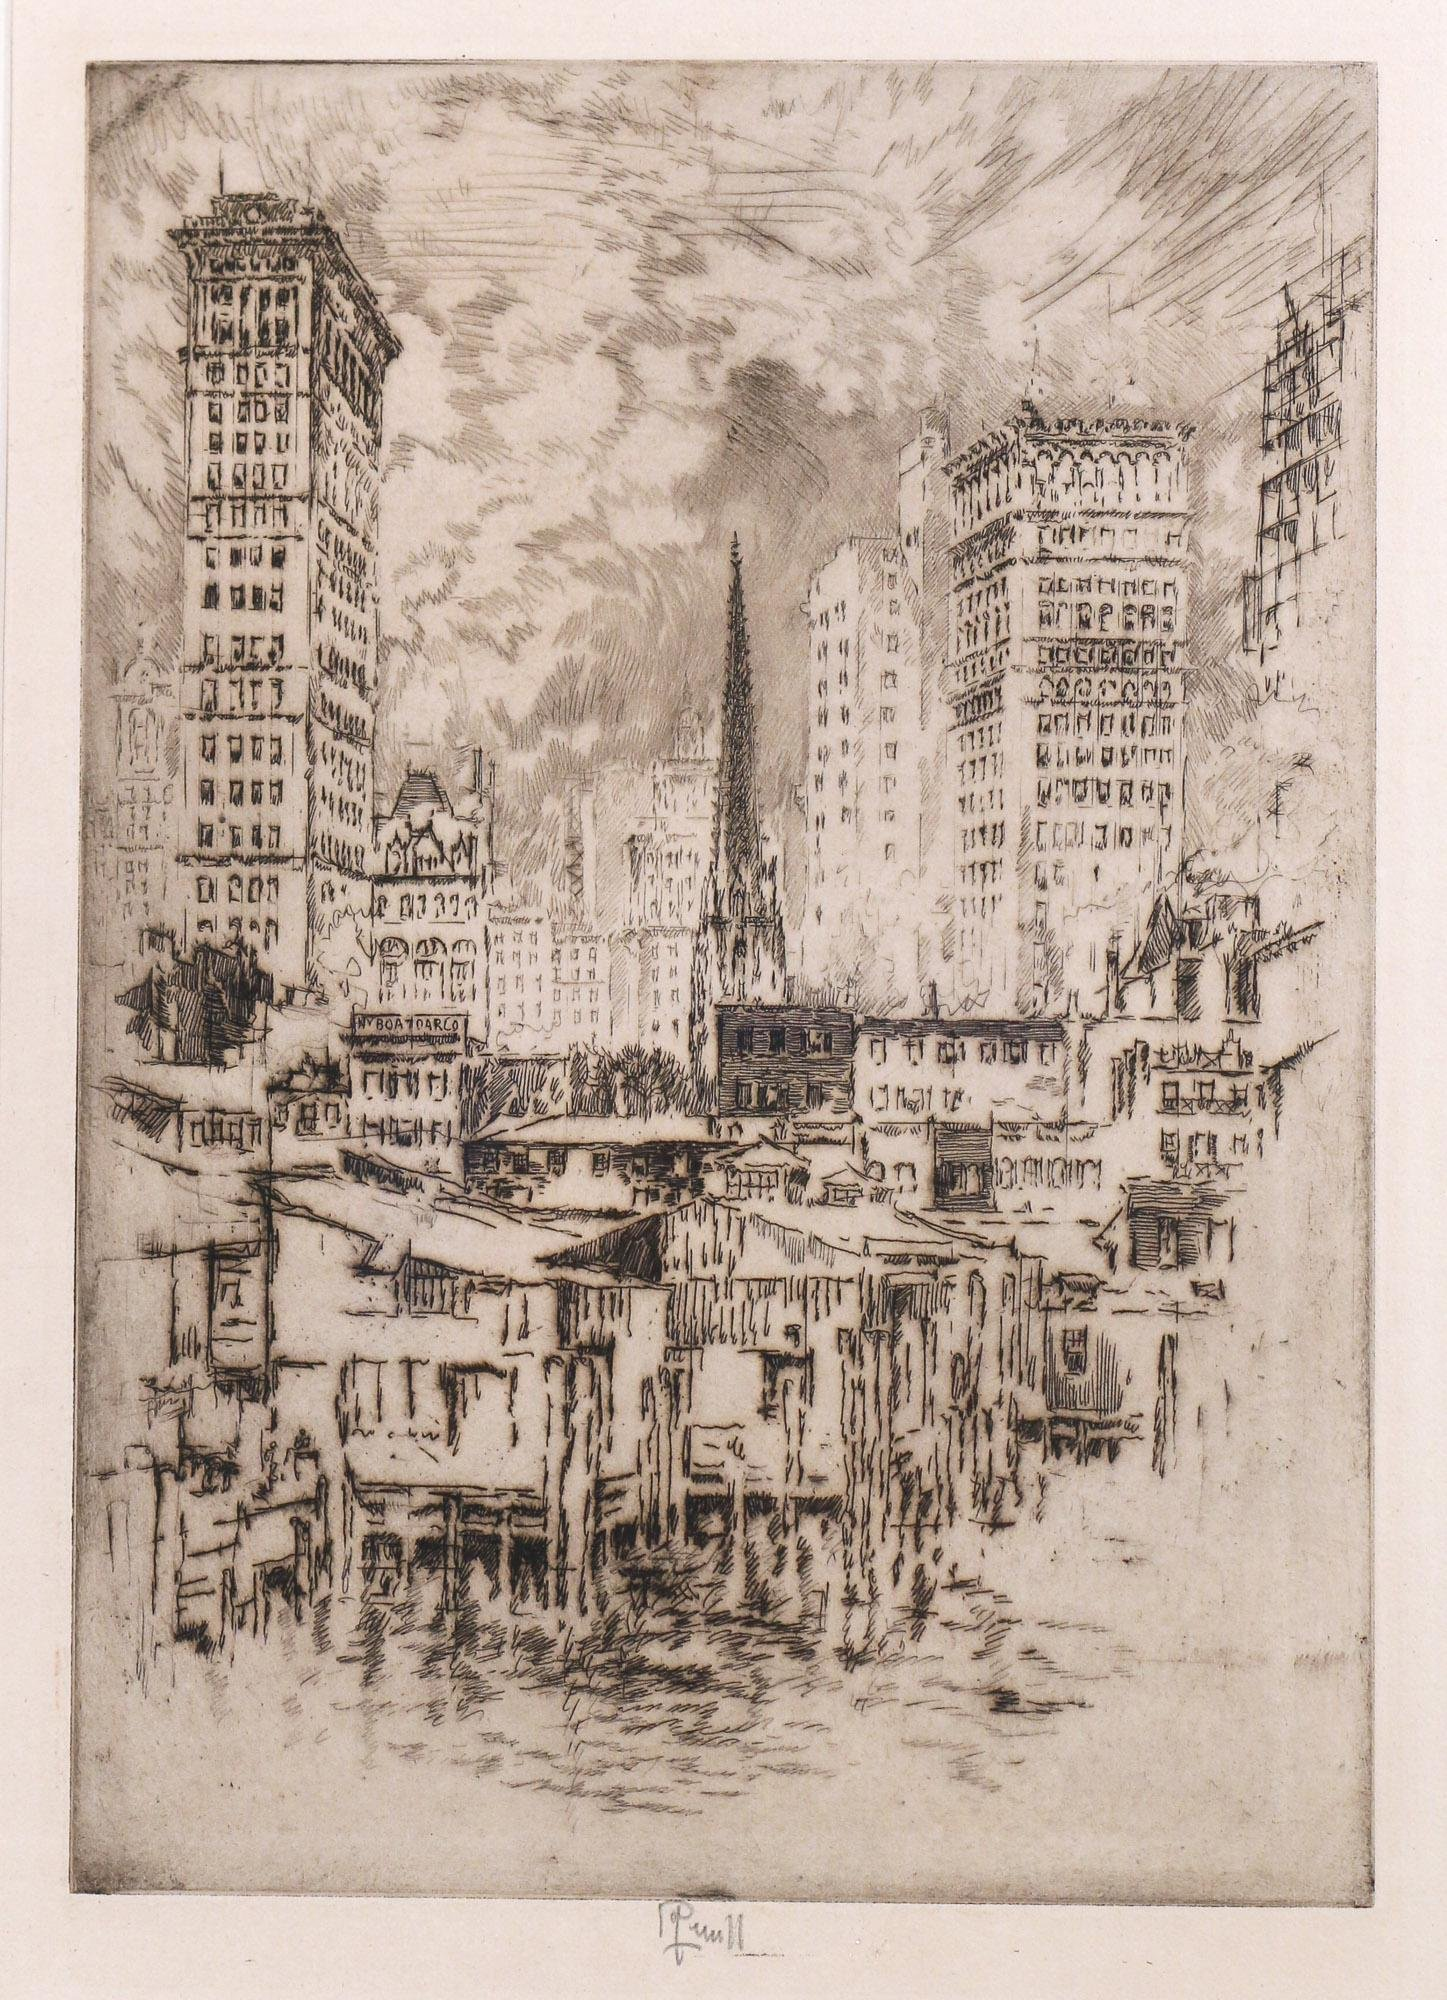 JOSEPH PENNELL (American, 1857-1926) ETCHING